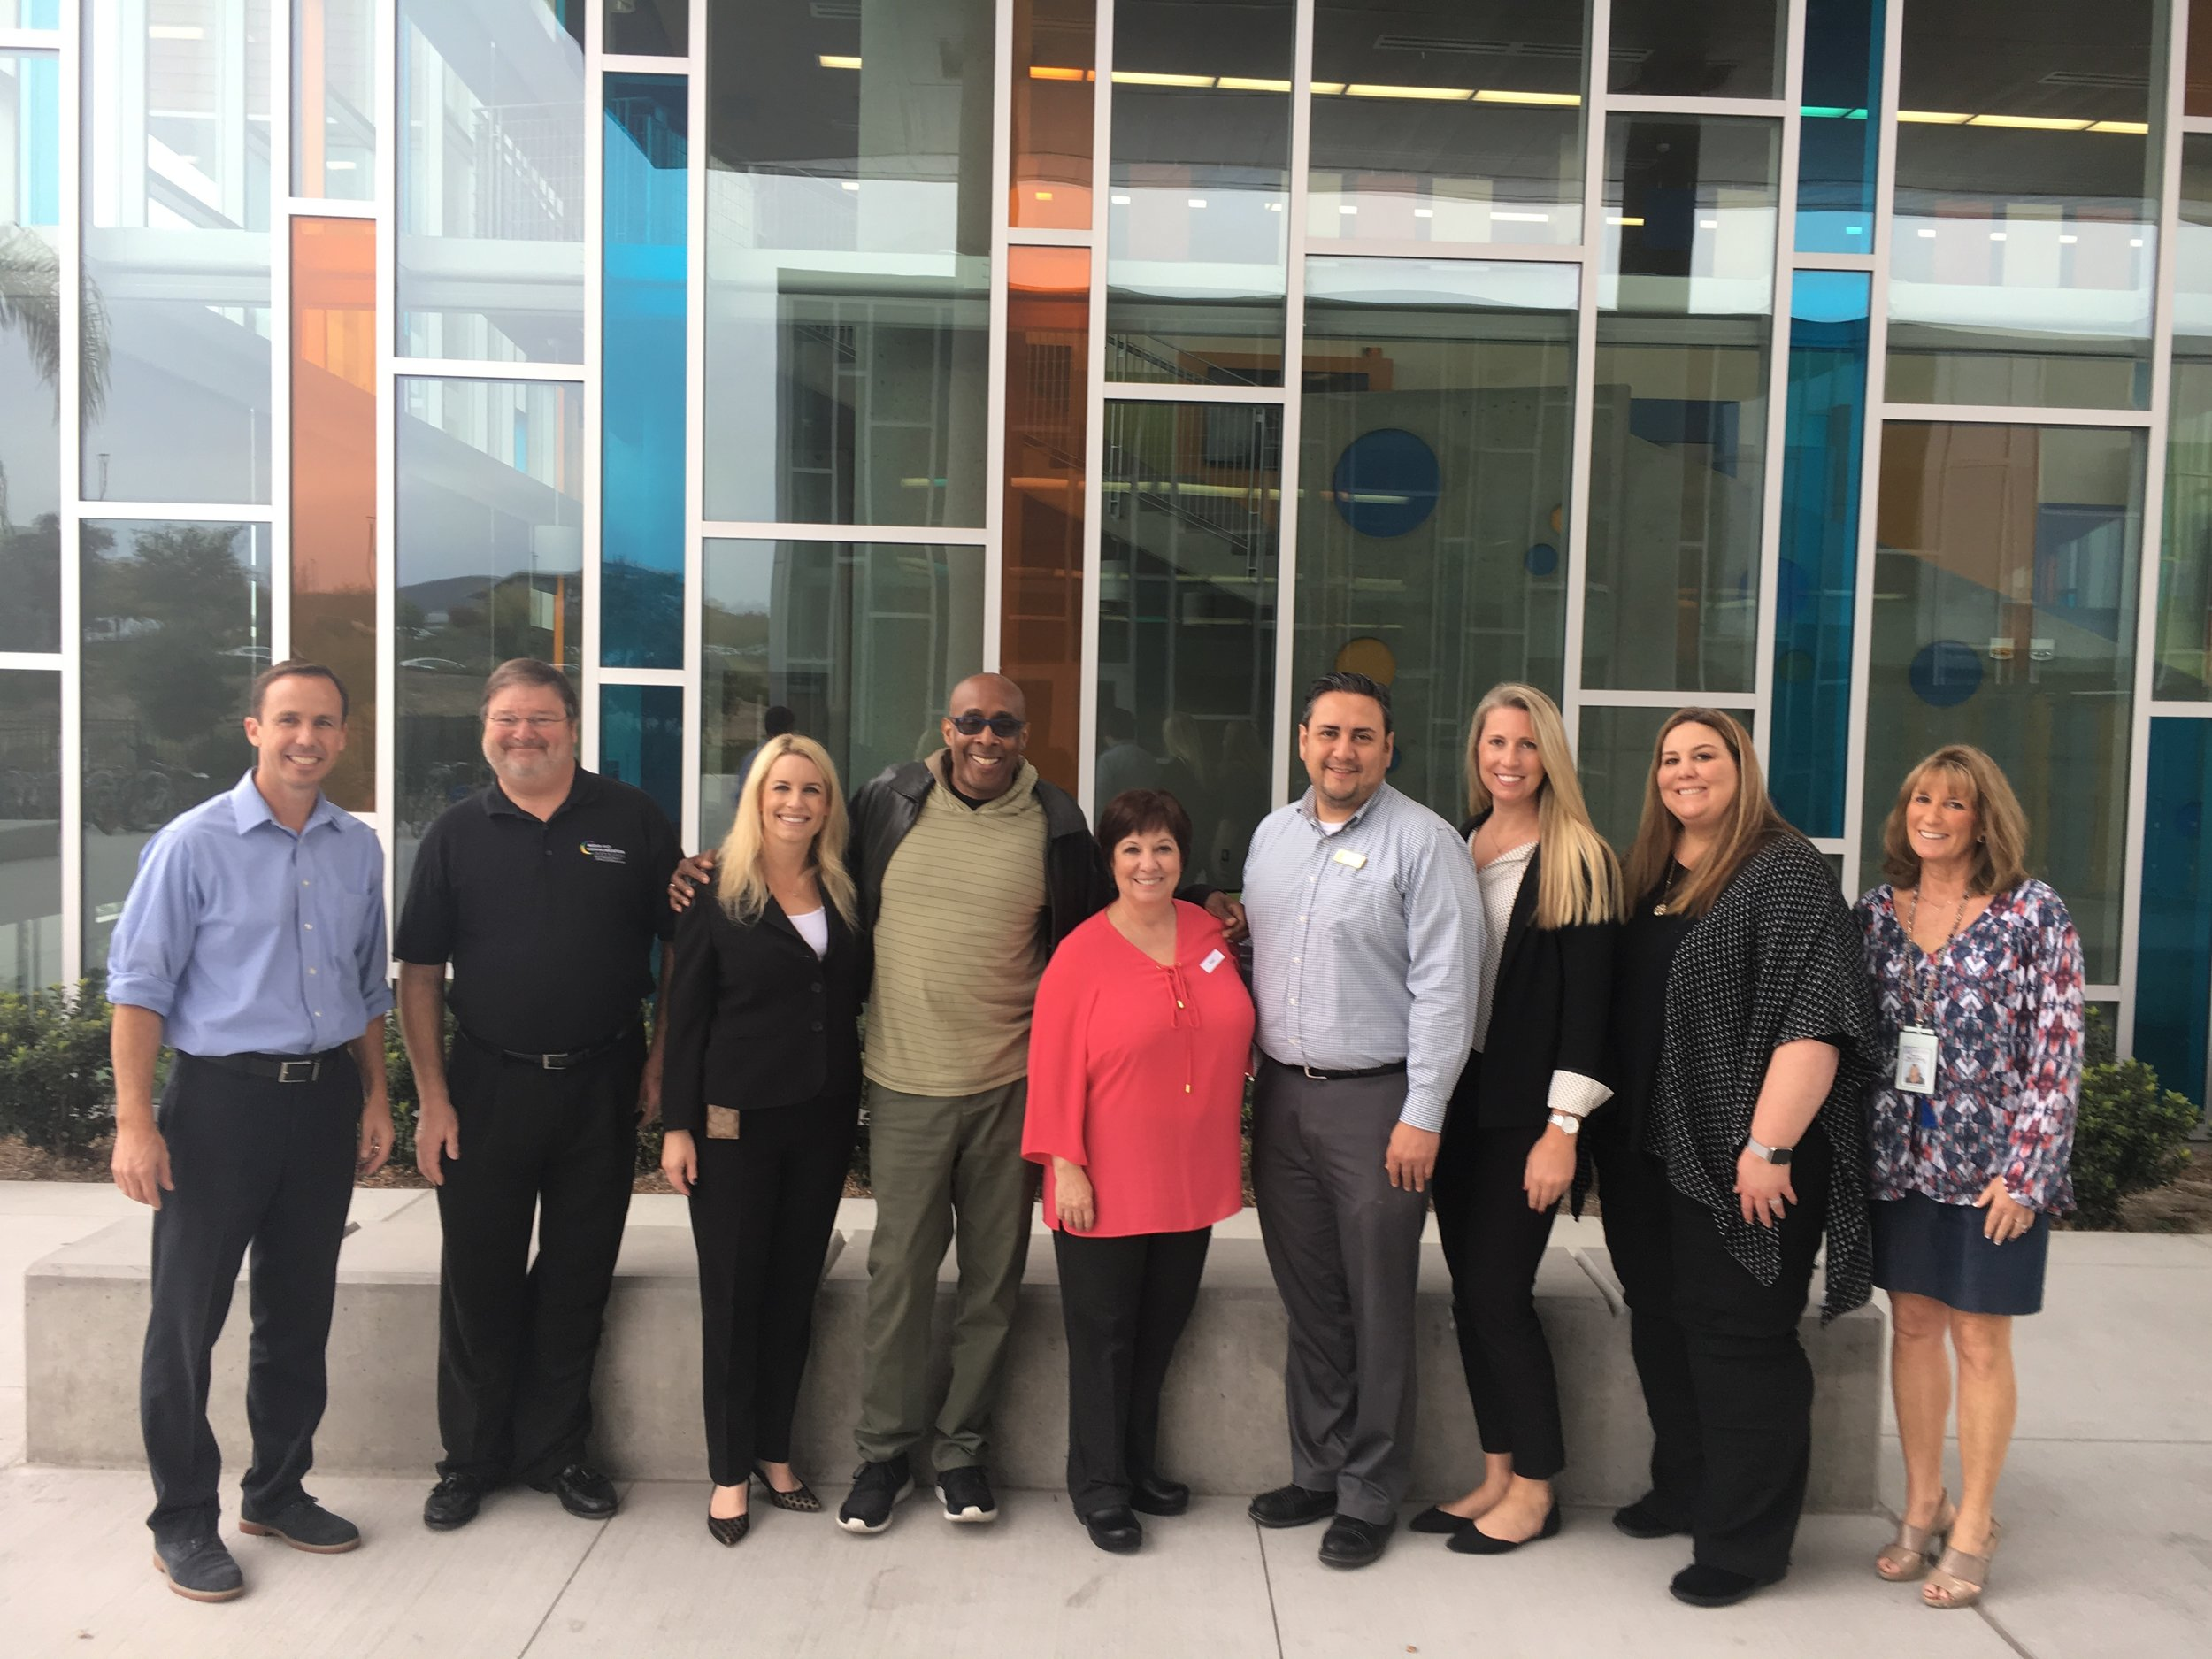 The Integrated Technology Services team at SDCOE enjoyed their up close experience of the collaborative and inviting learning culture at @Design39Campus. We would like to like to extend our sincere thanks for your time and allowing us to experience your amazing campus community. #SdcoeITS